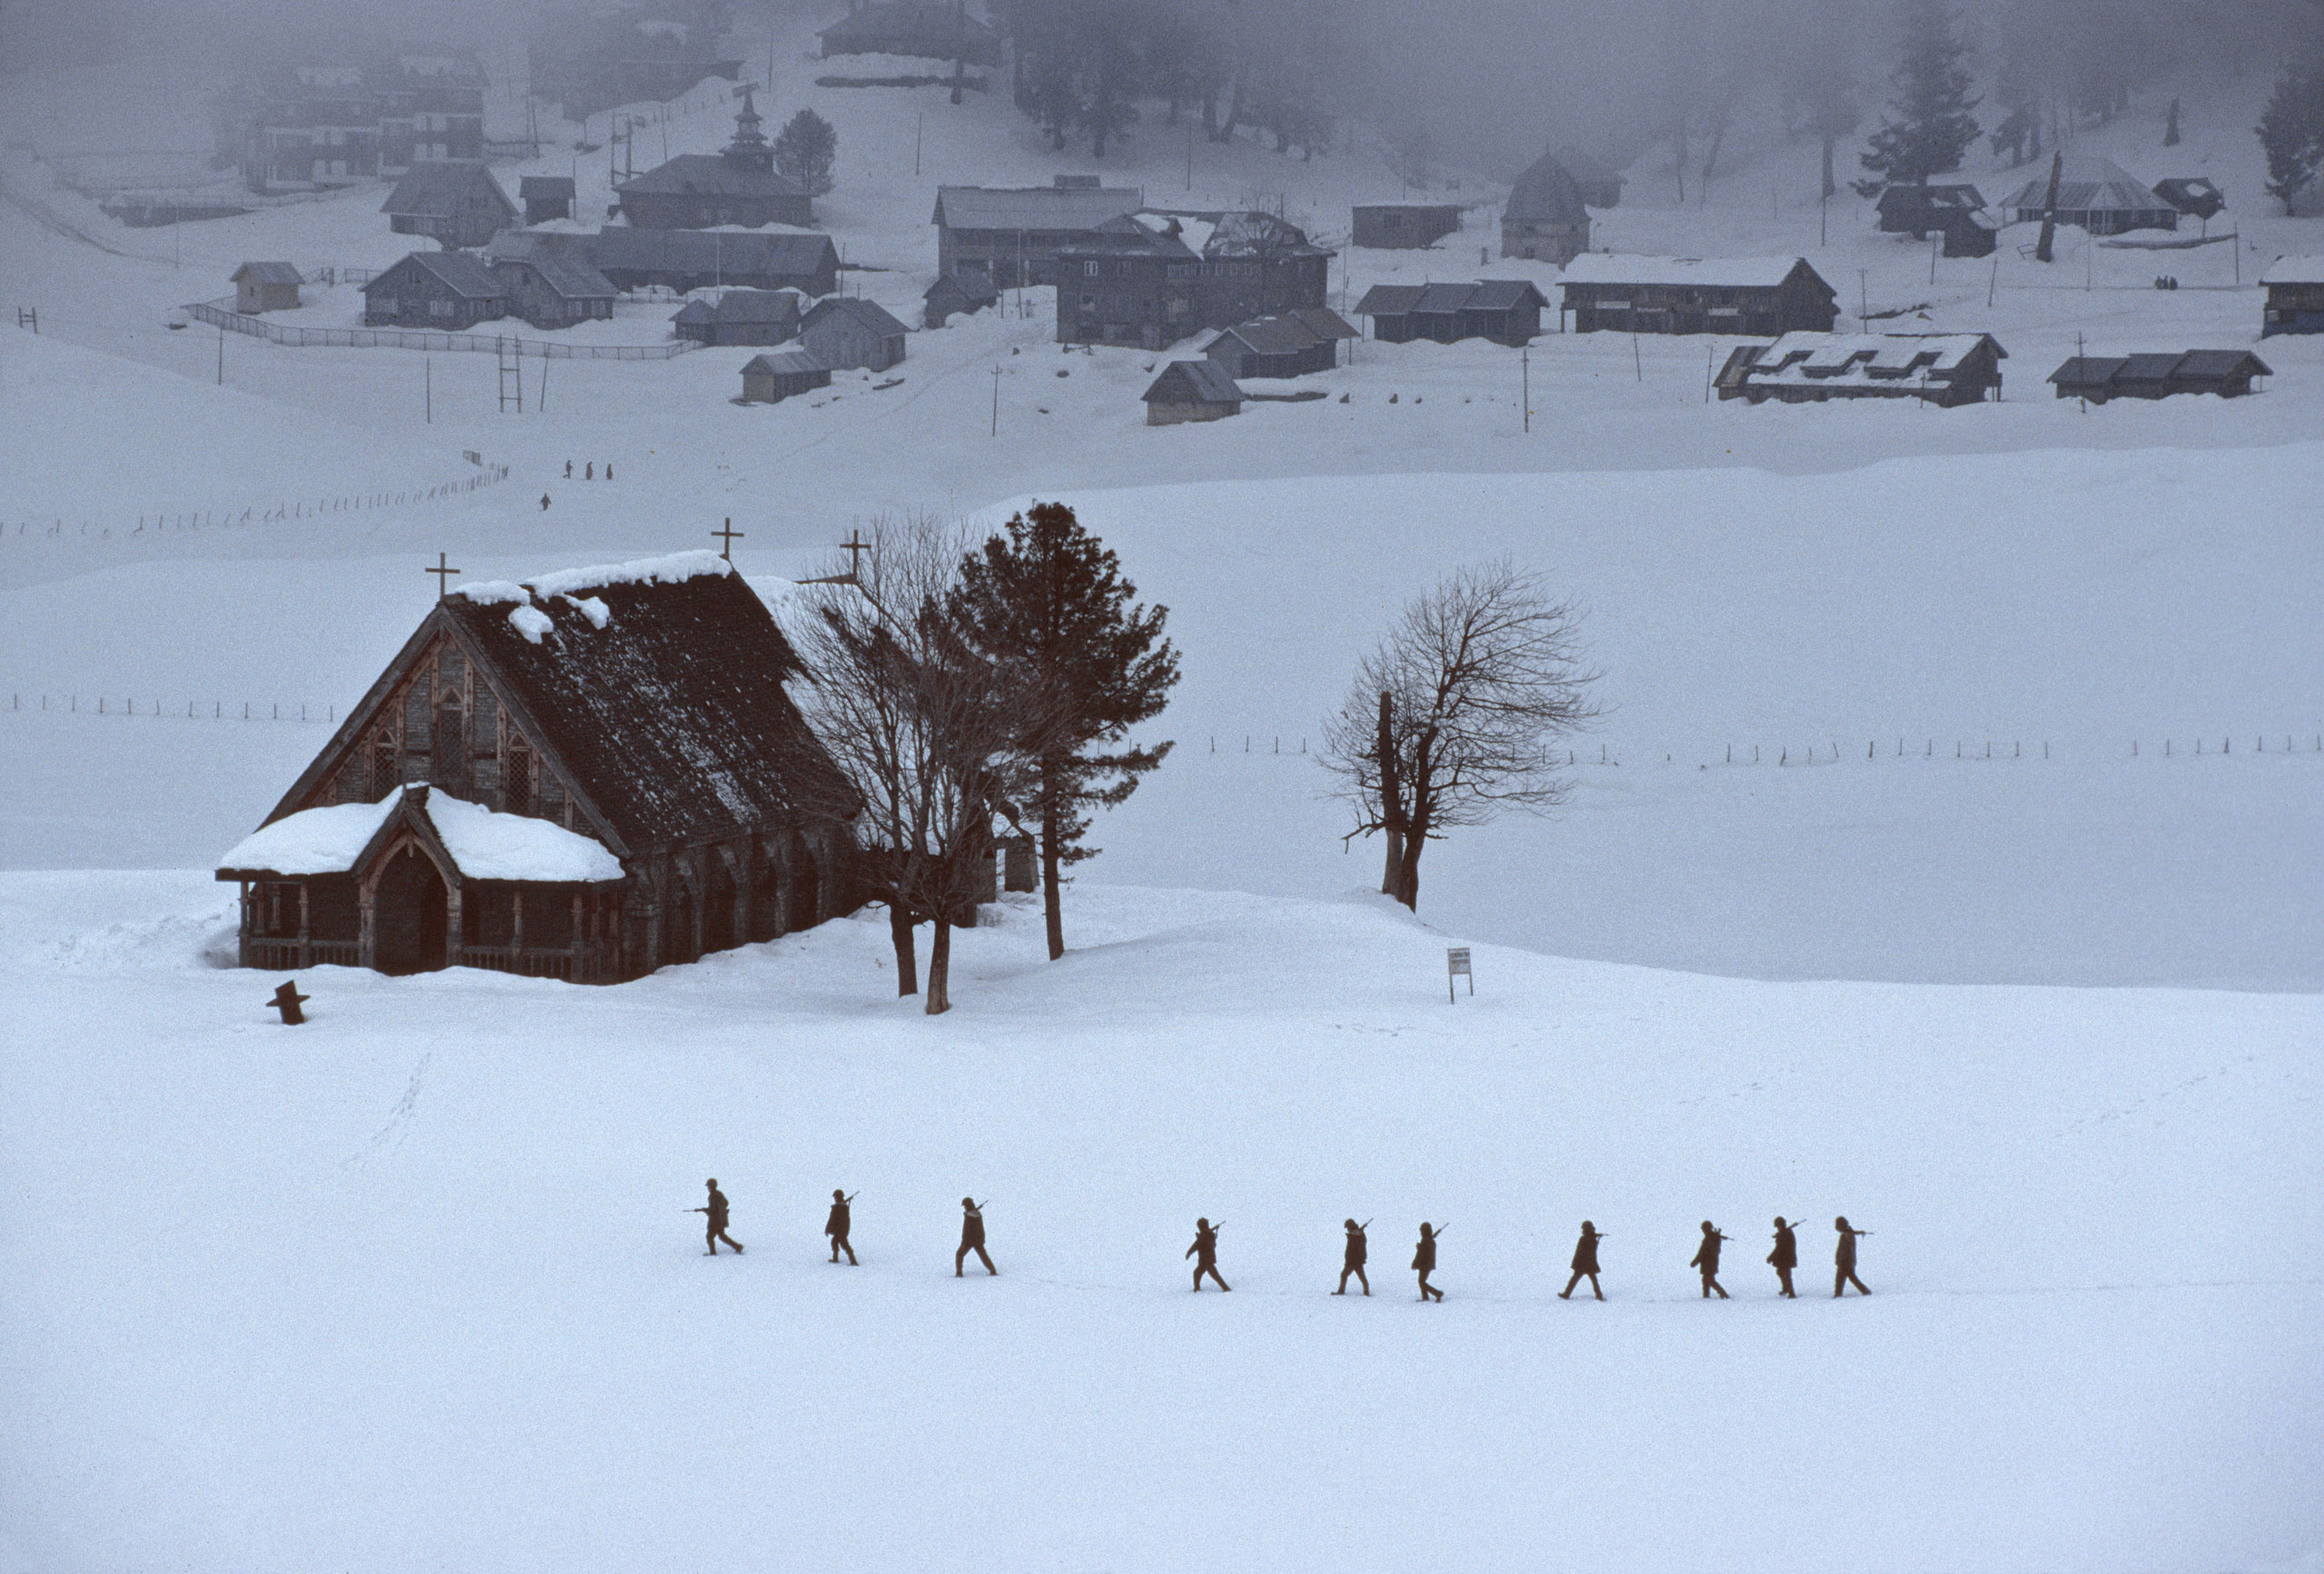 Soldiers trudge through the snow, passing a church, mosque and temple.                               Gulmarg, Kashmir, 1999